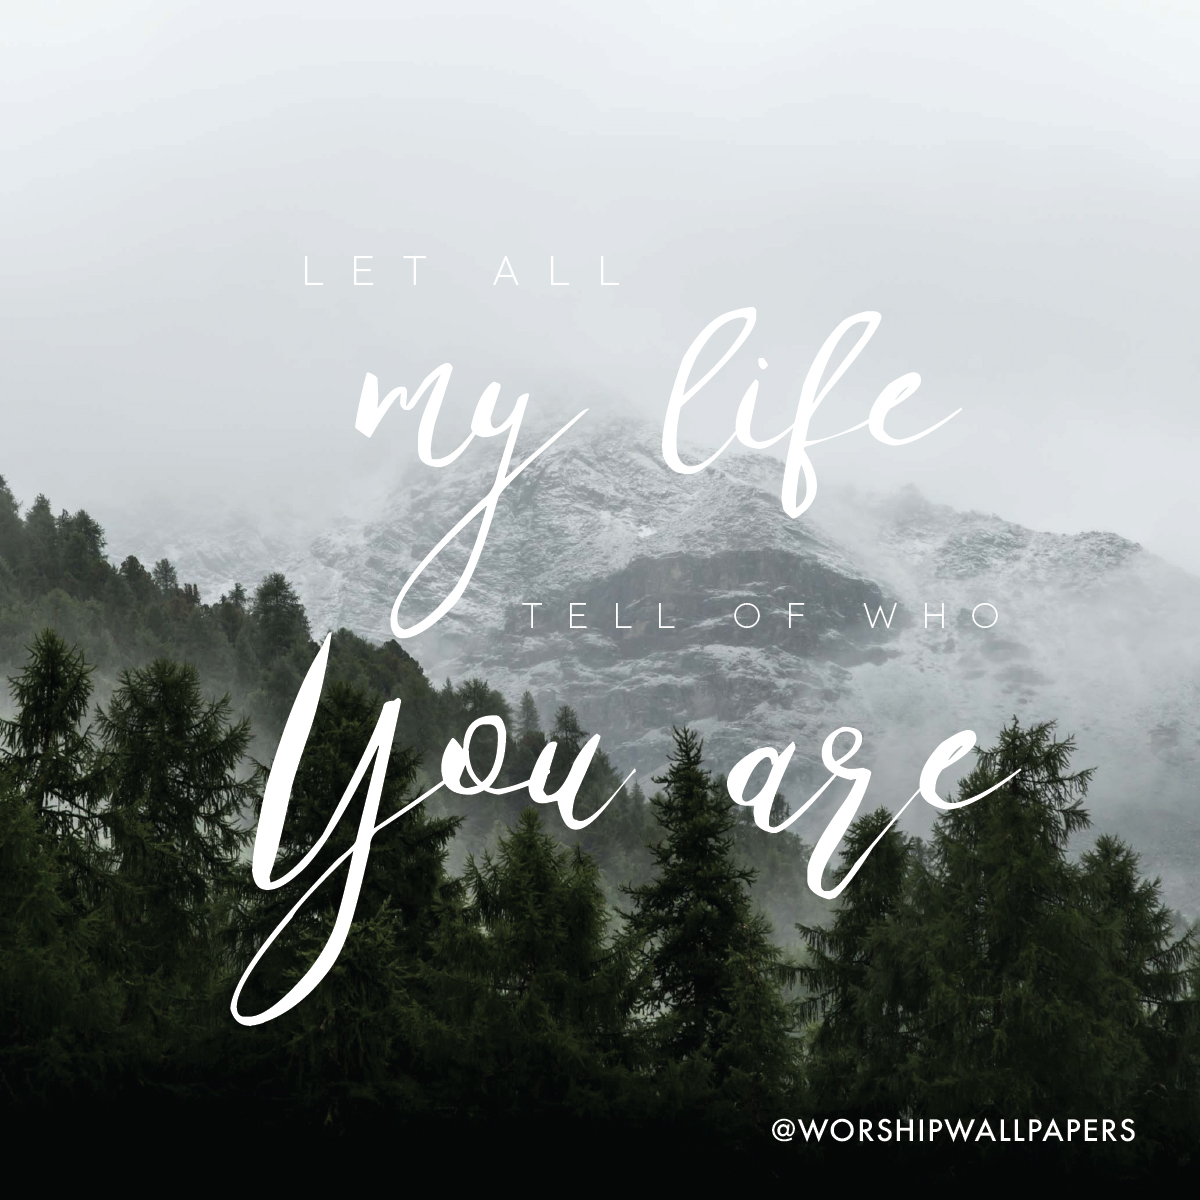 Cute Wallpapers Pinterest Laptop Quote For The One Jenn Johnson Amp Bethel Music Worship